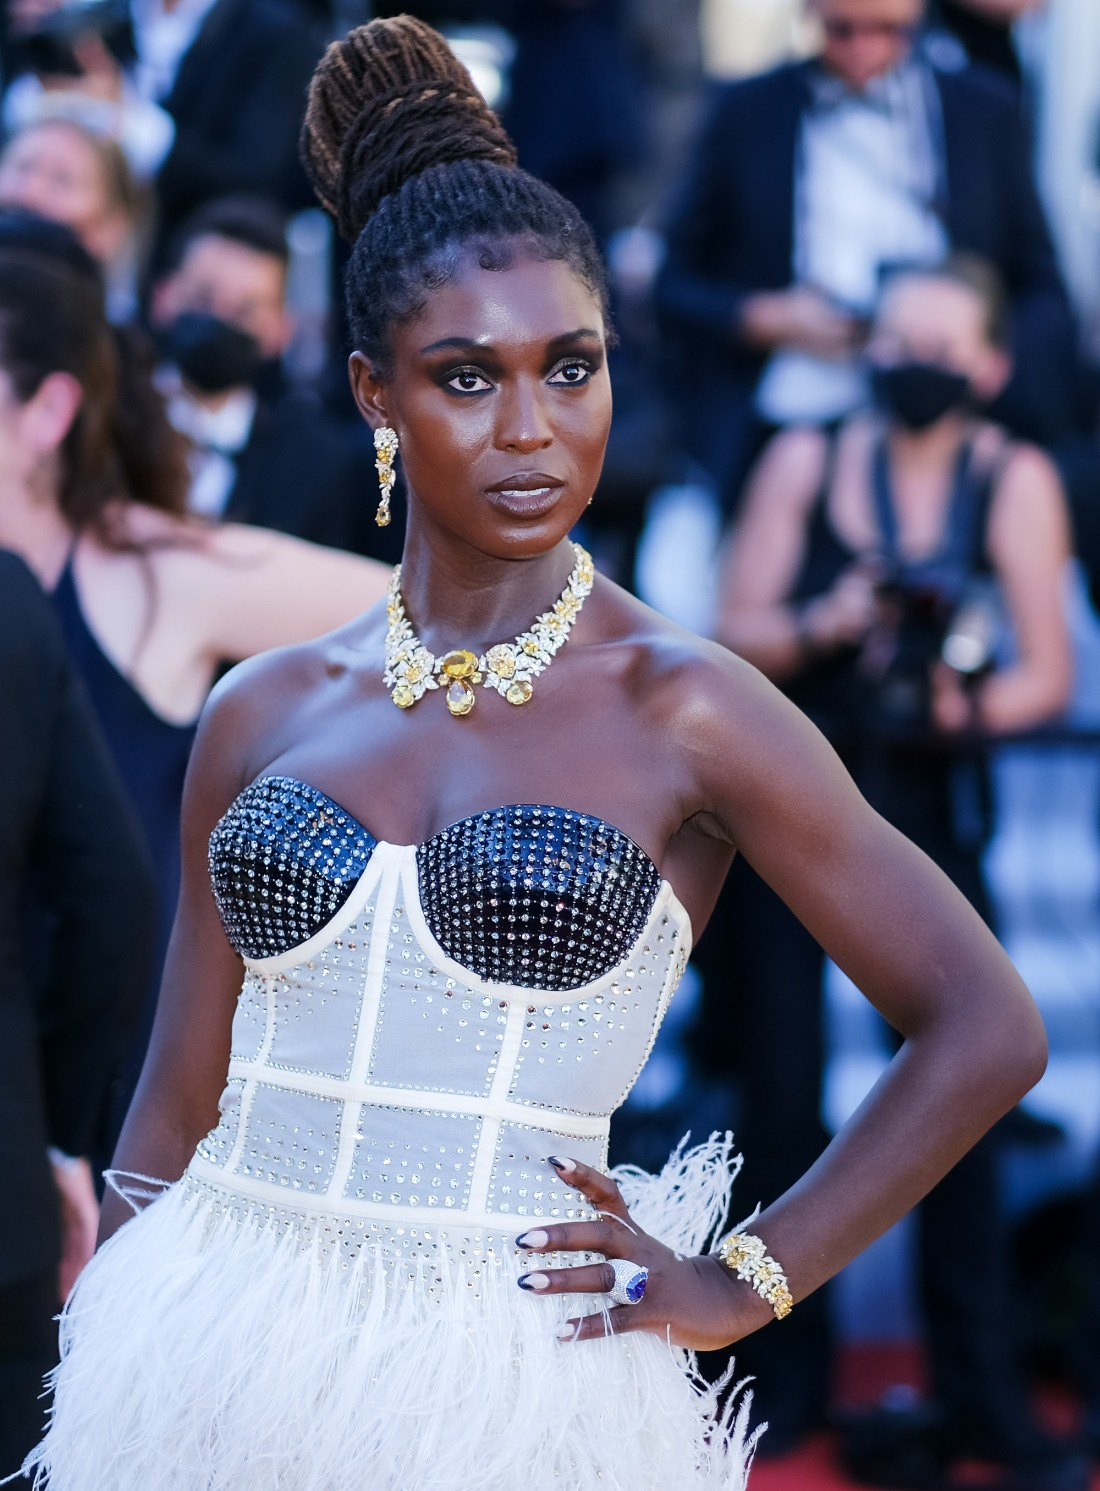 Jodie Turner-Smith was the victim of another Cannes Film Festival jewelry robbery